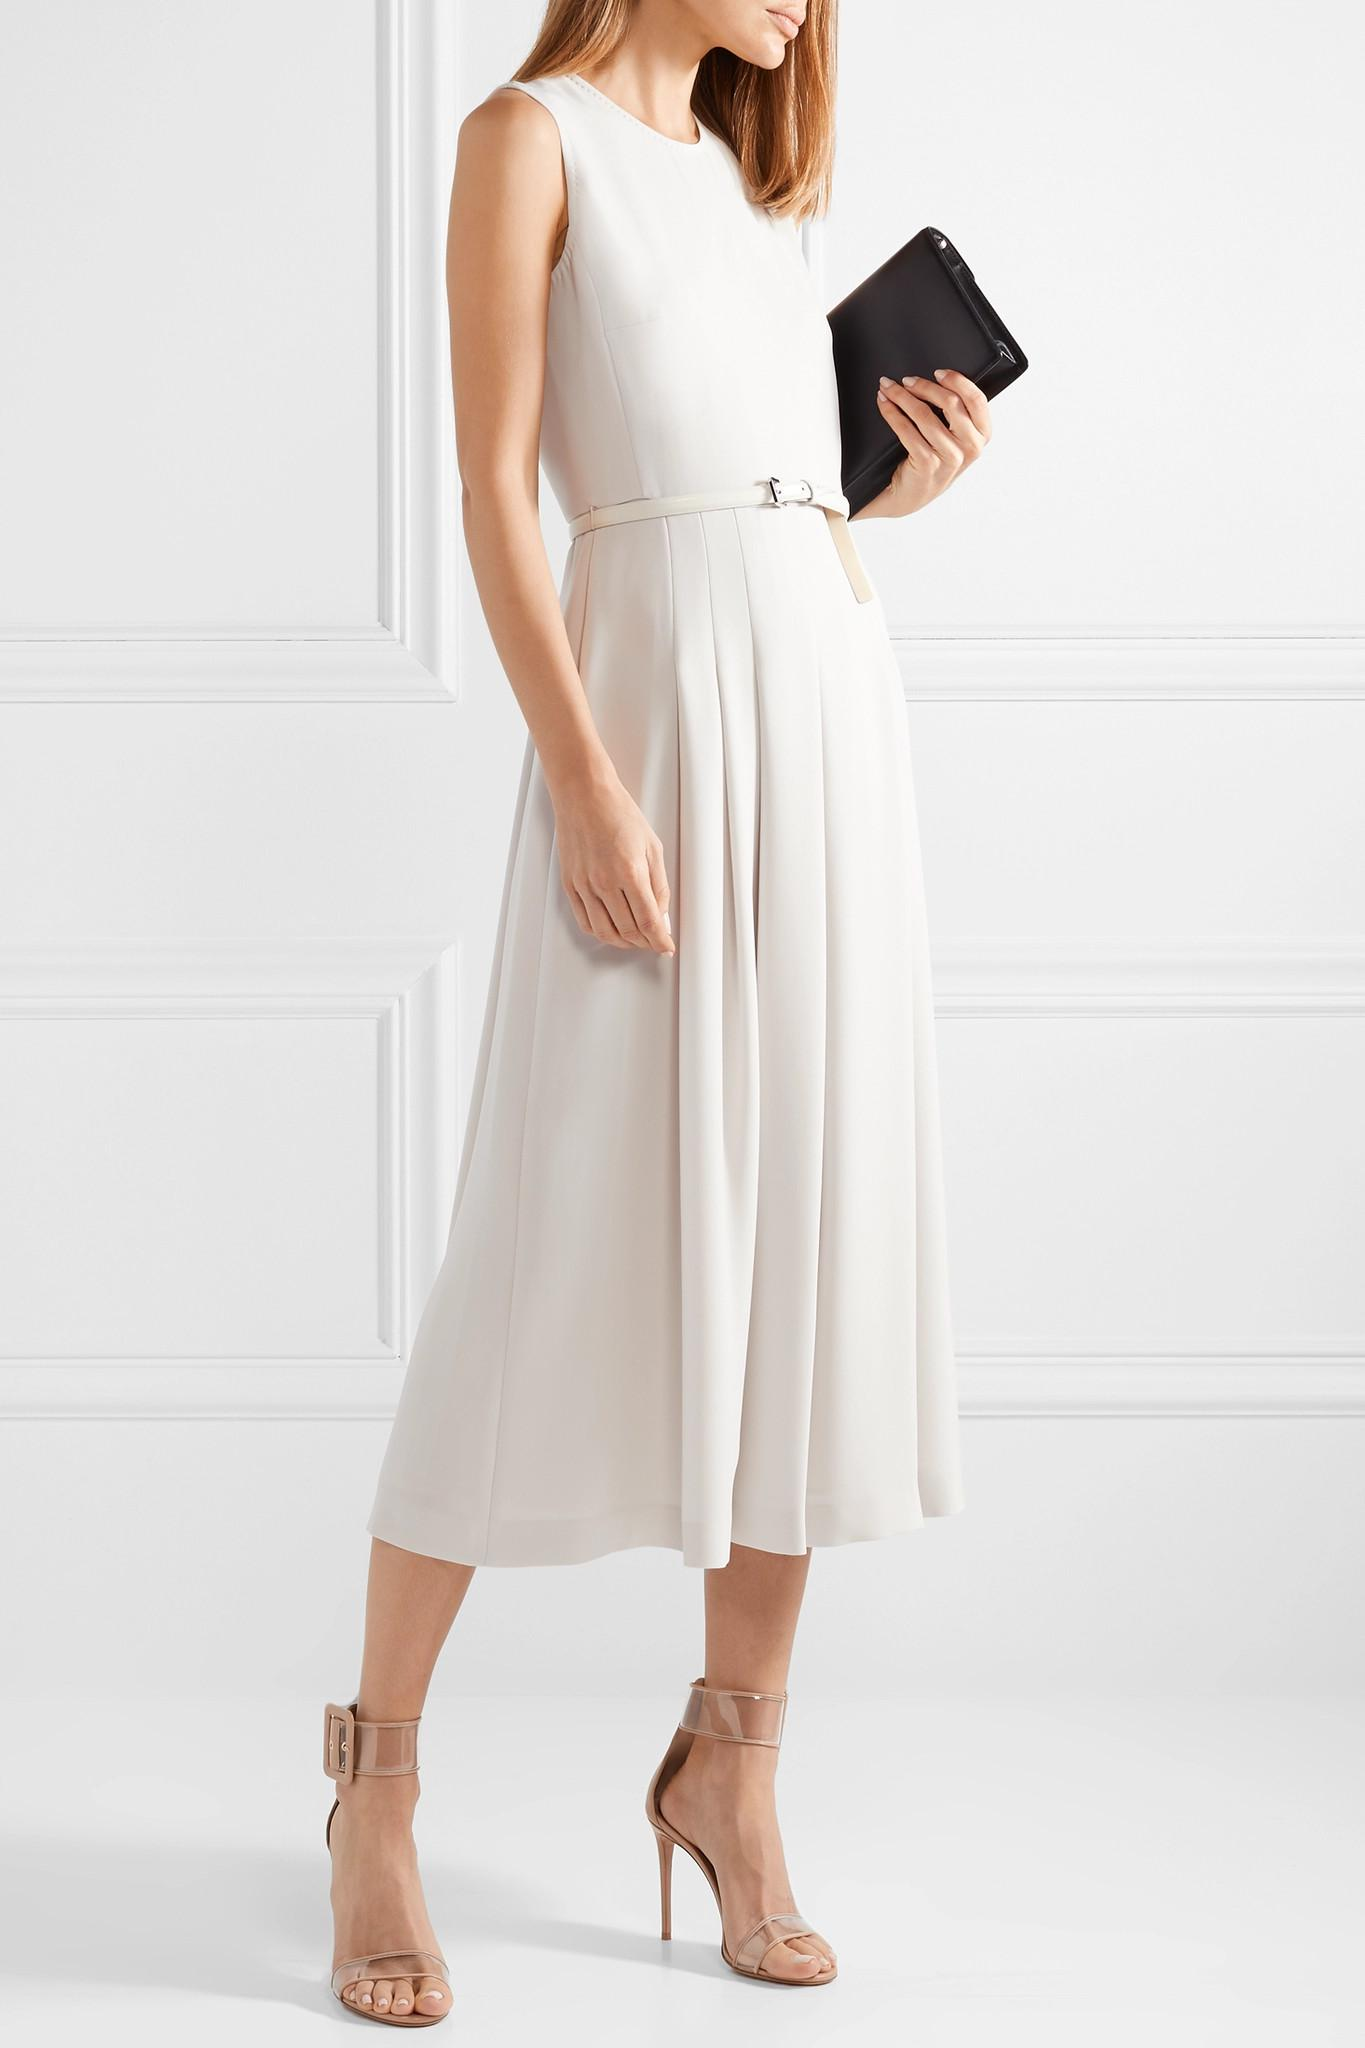 b06bd1050a10be Max Mara Belted Stretch-cady Midi Dress in White - Lyst